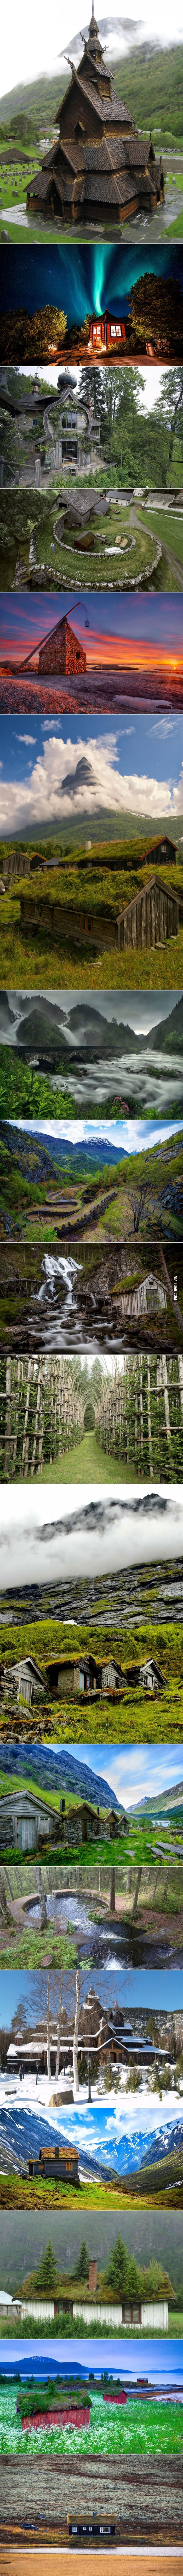 Norway..land of trolls and beautiful architecture - 9GAG